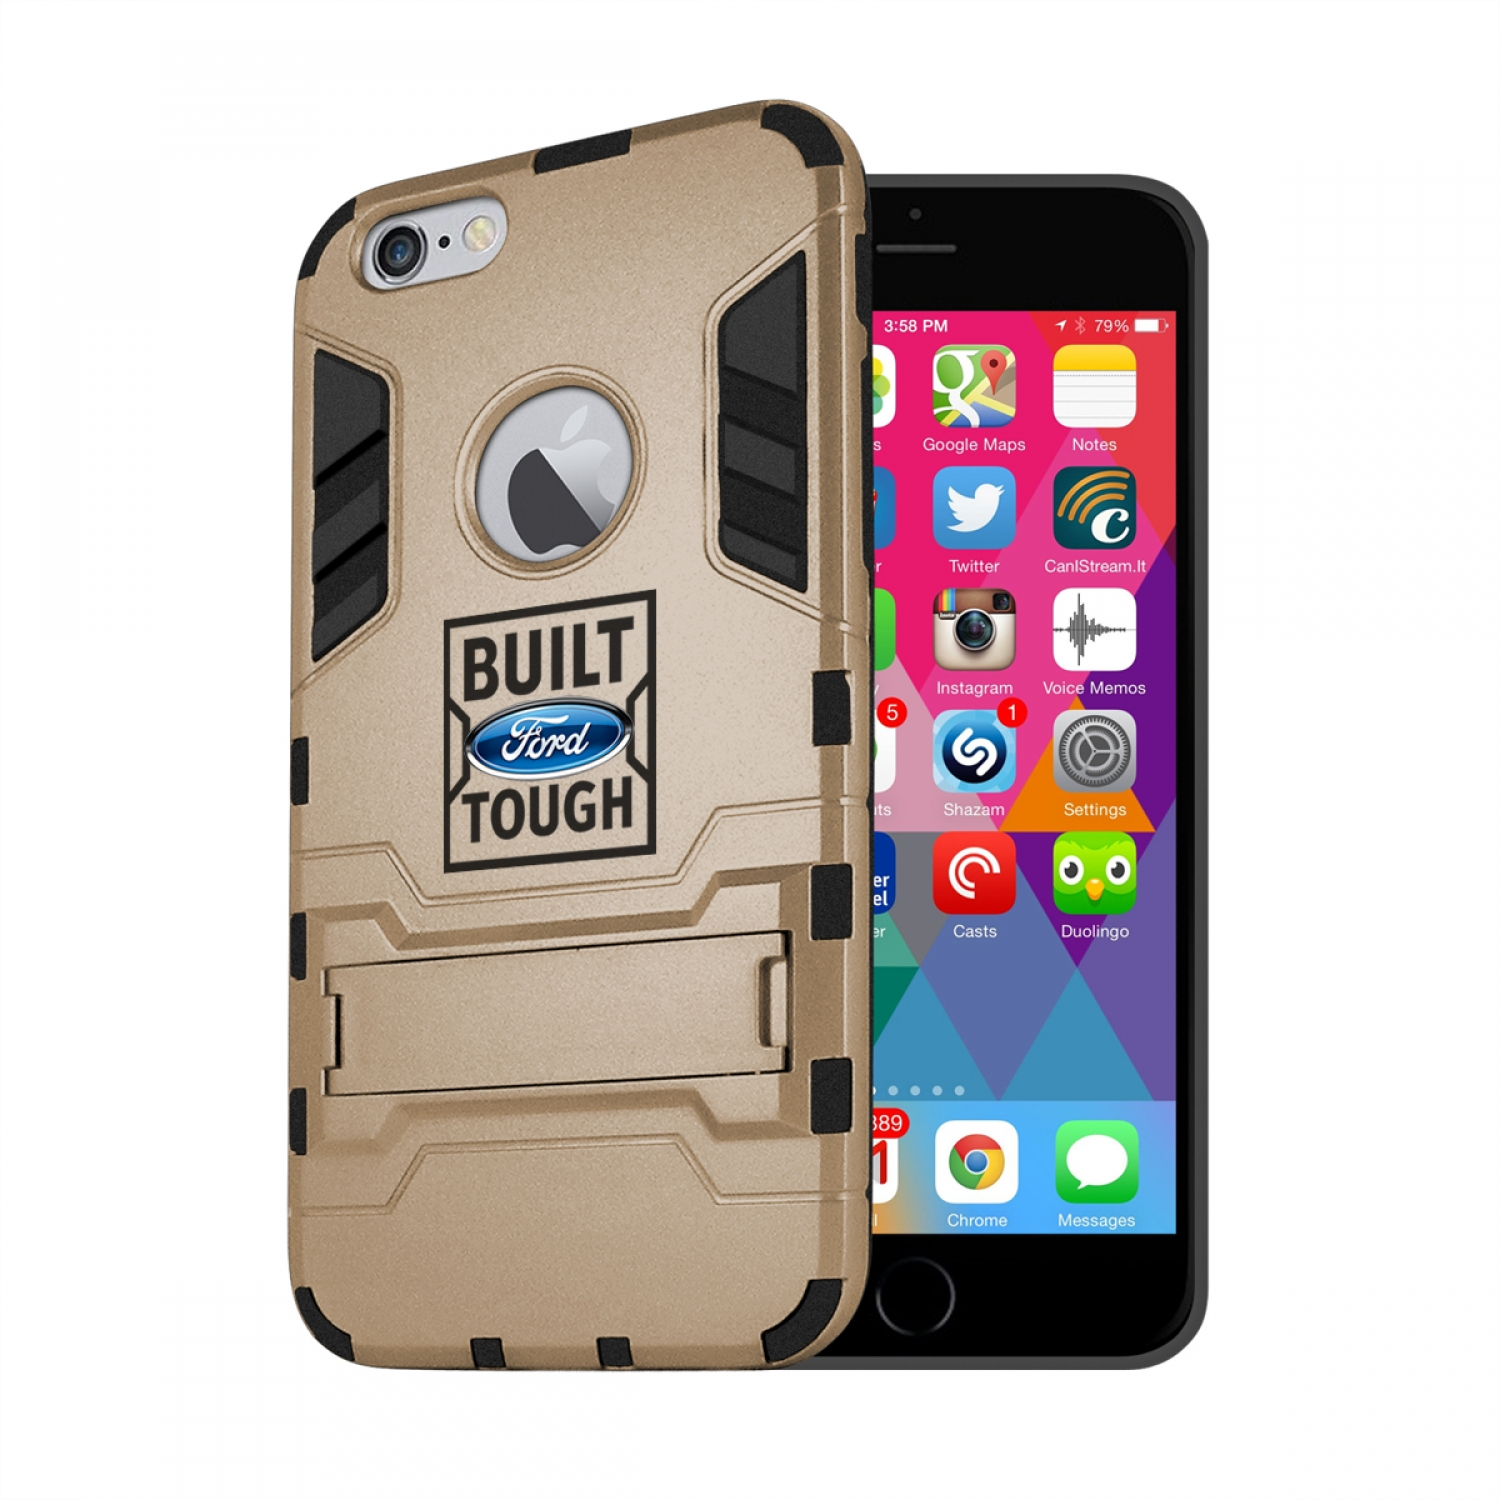 Ford Built Ford Tough iPhone 6 6s Shockproof TPU ABS Hybrid Golden Phone Case